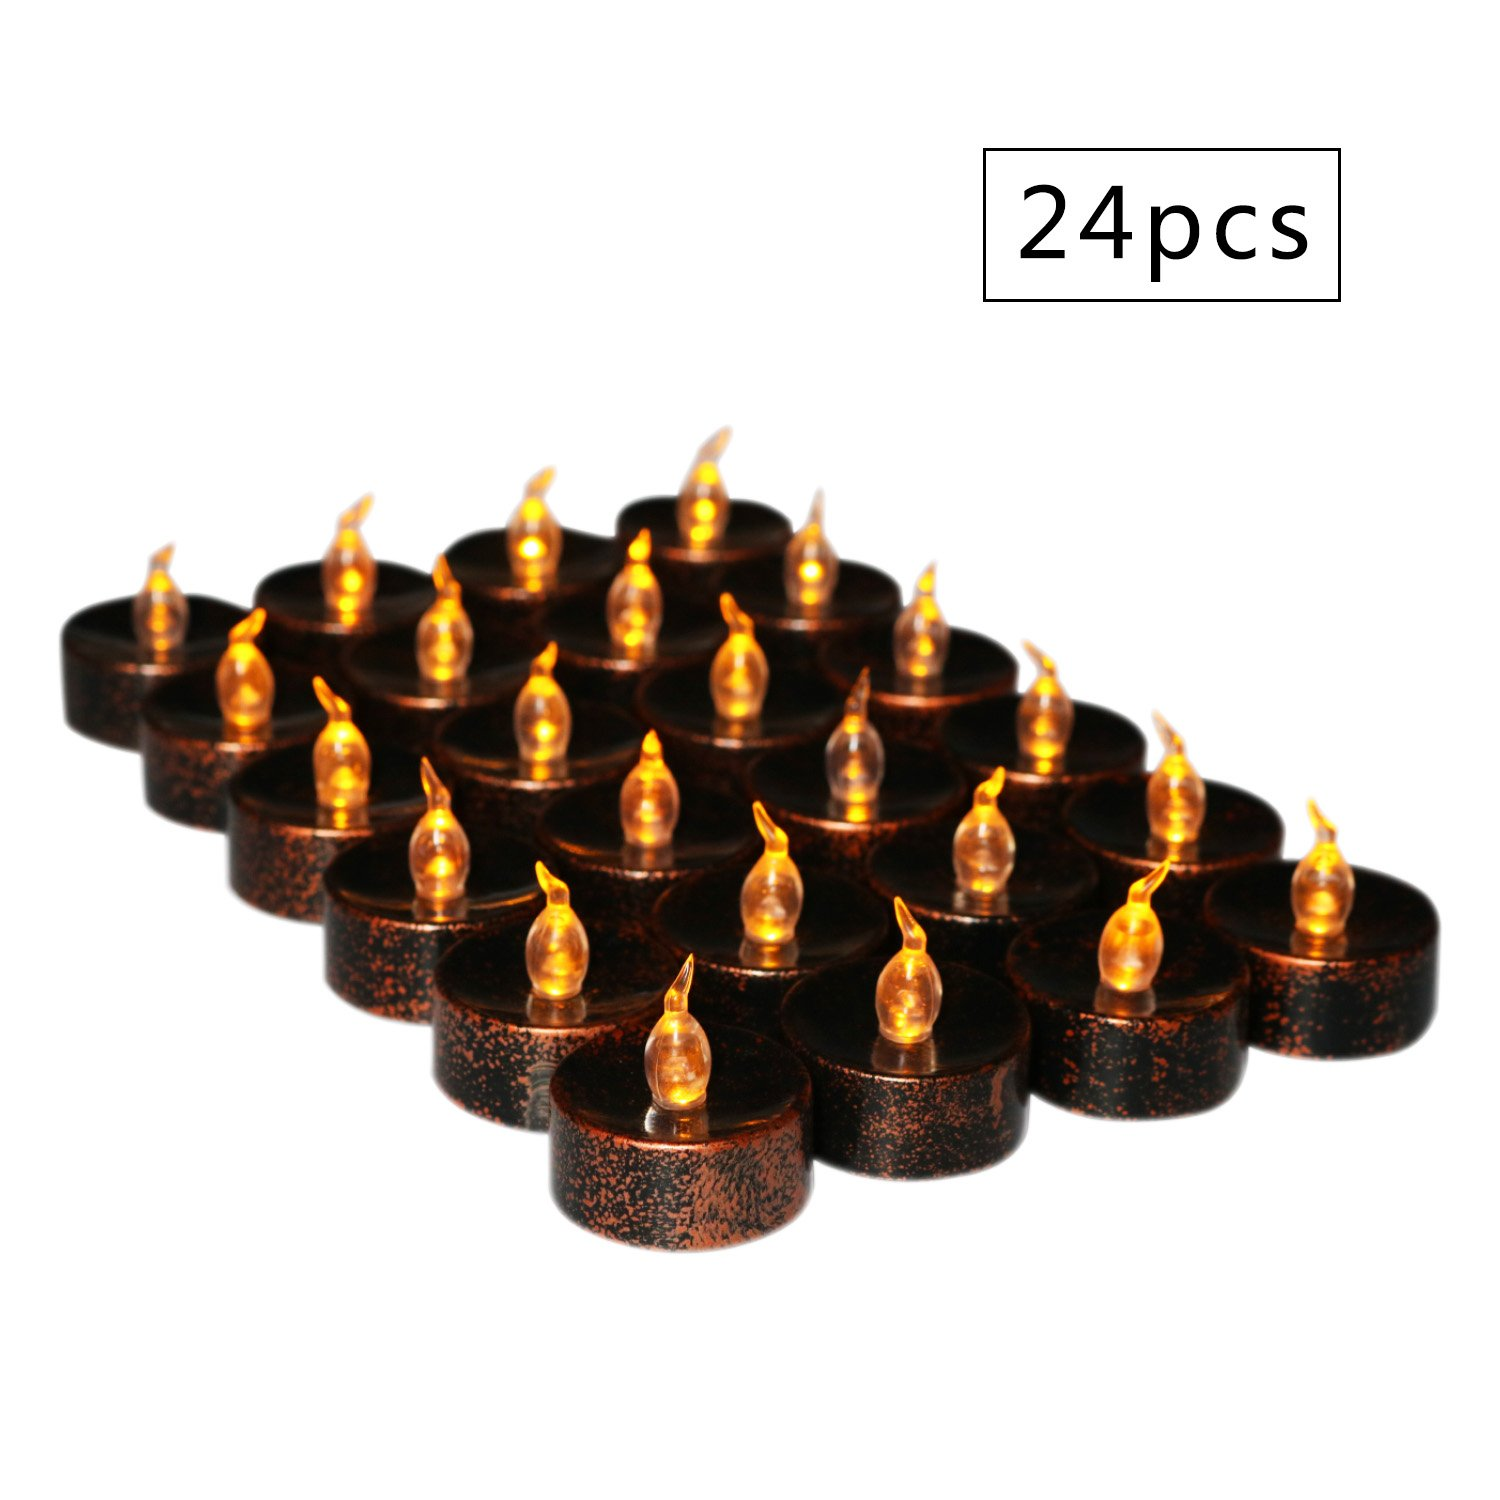 24pcs Black Tea Lights Candles Battery Operated Electric LED Fake Candles Flameless Amber Yellow for Holiday Halloween Outdoor Centerpiece Reception